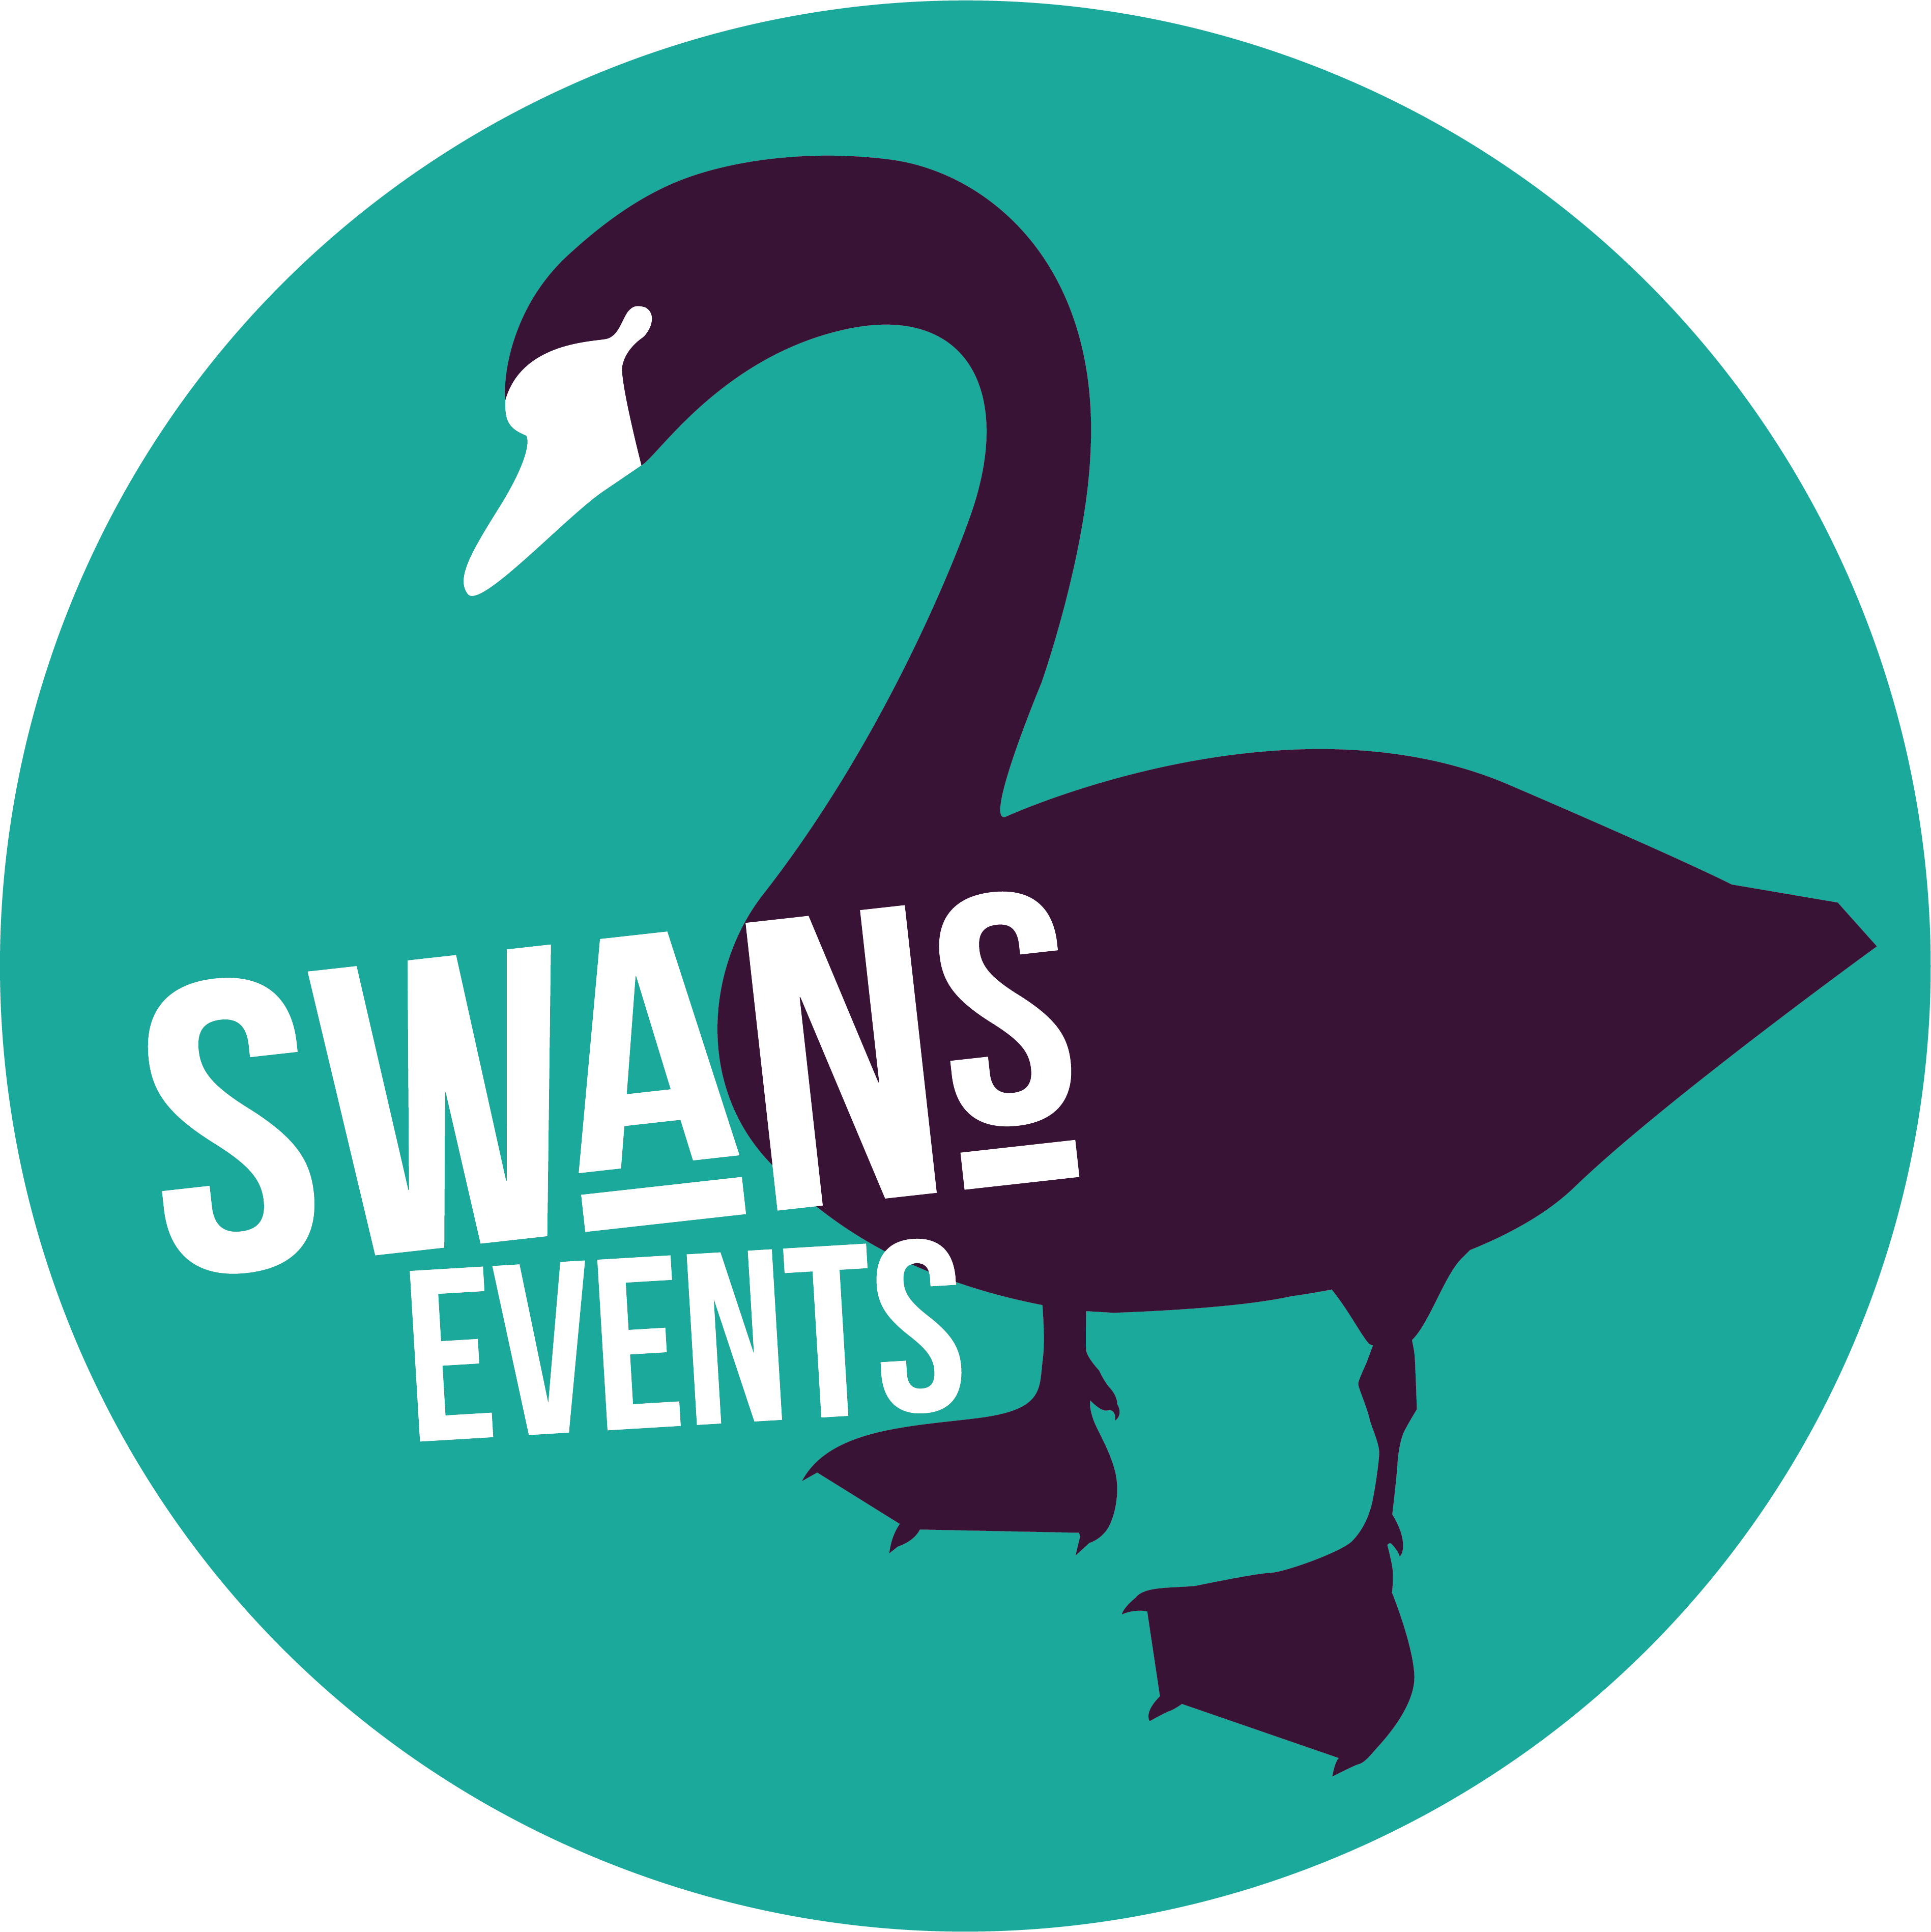 Swans Events logo